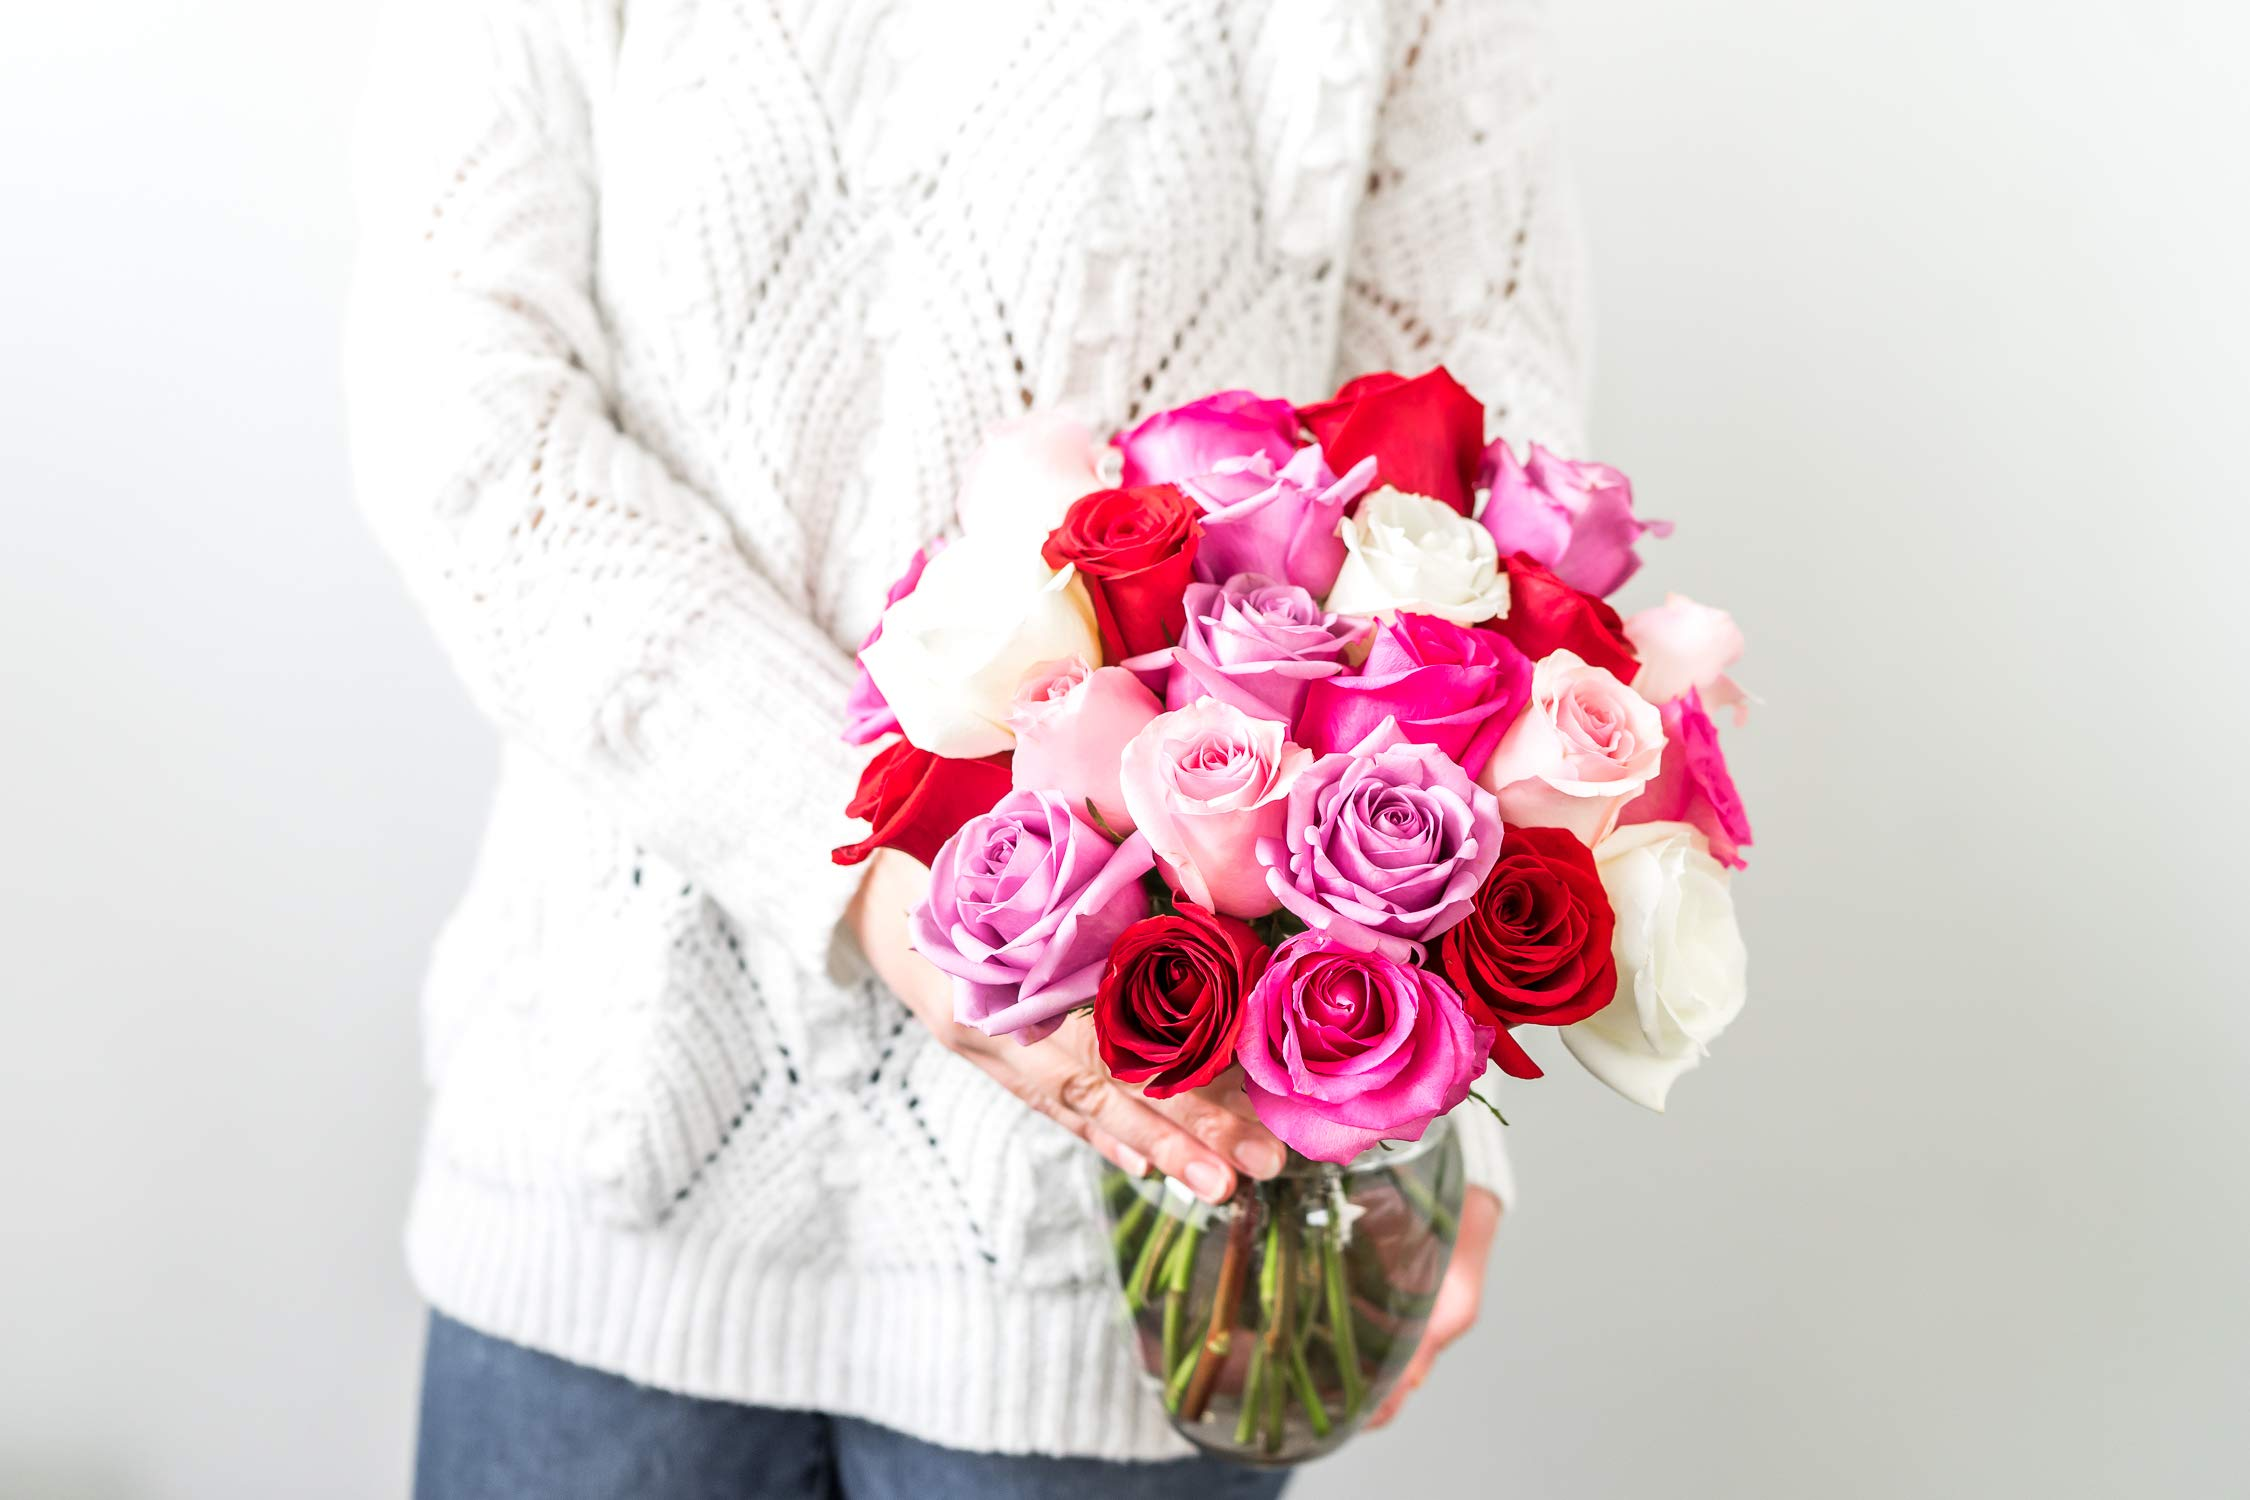 Flowers - 2 Dozen Roses in Red, Pink, Purple & White (Free Vase Included) by From You Flowers (Image #5)